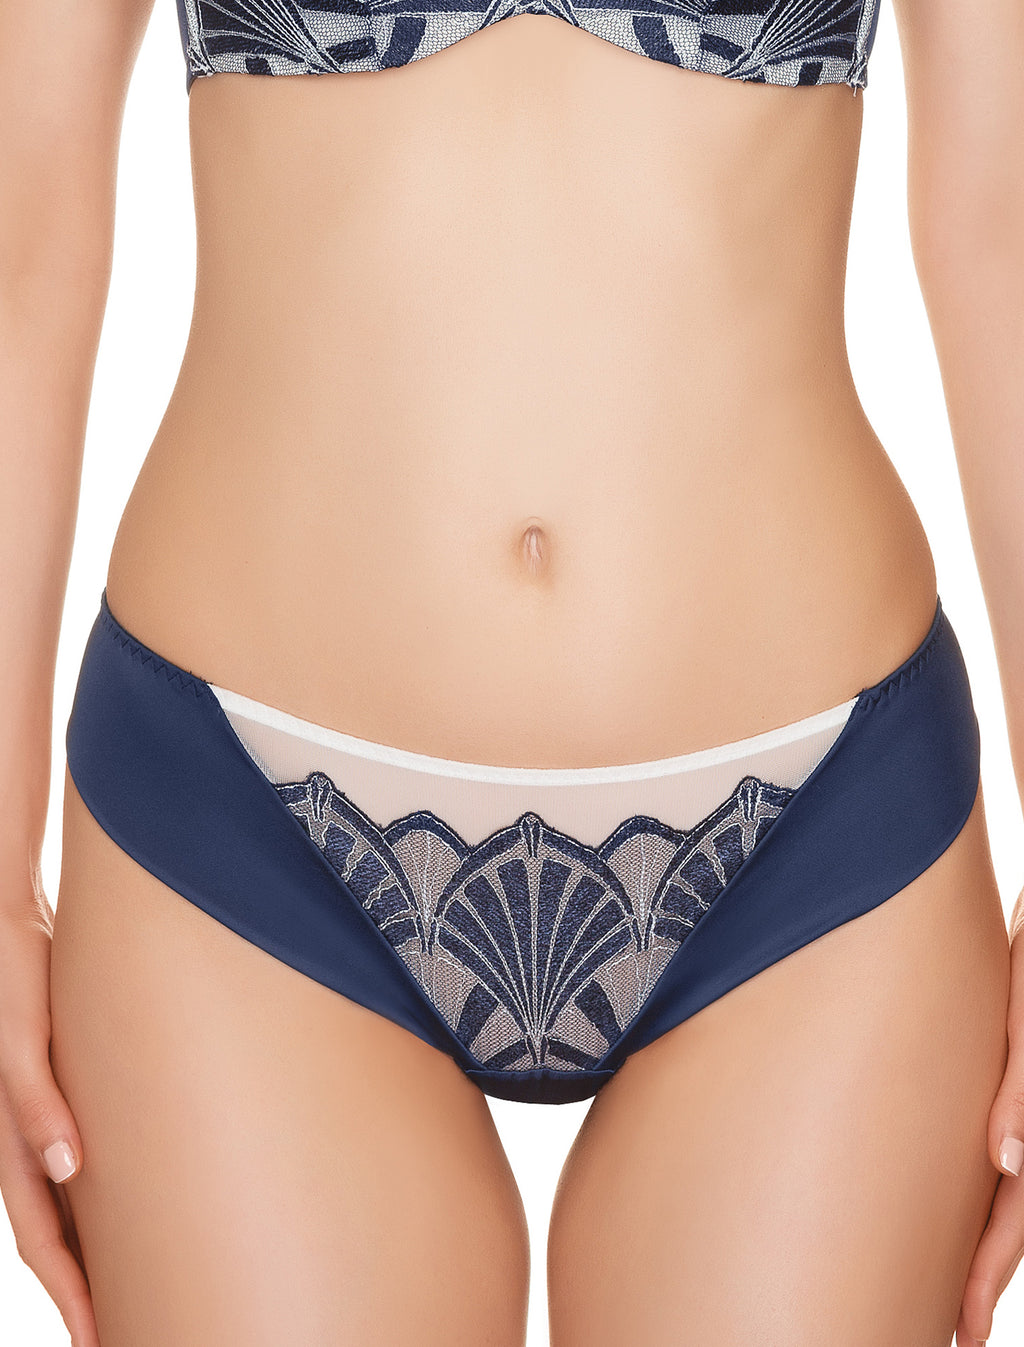 Lauma, Blue String Tanga Briefs, On Model Front, 53H60